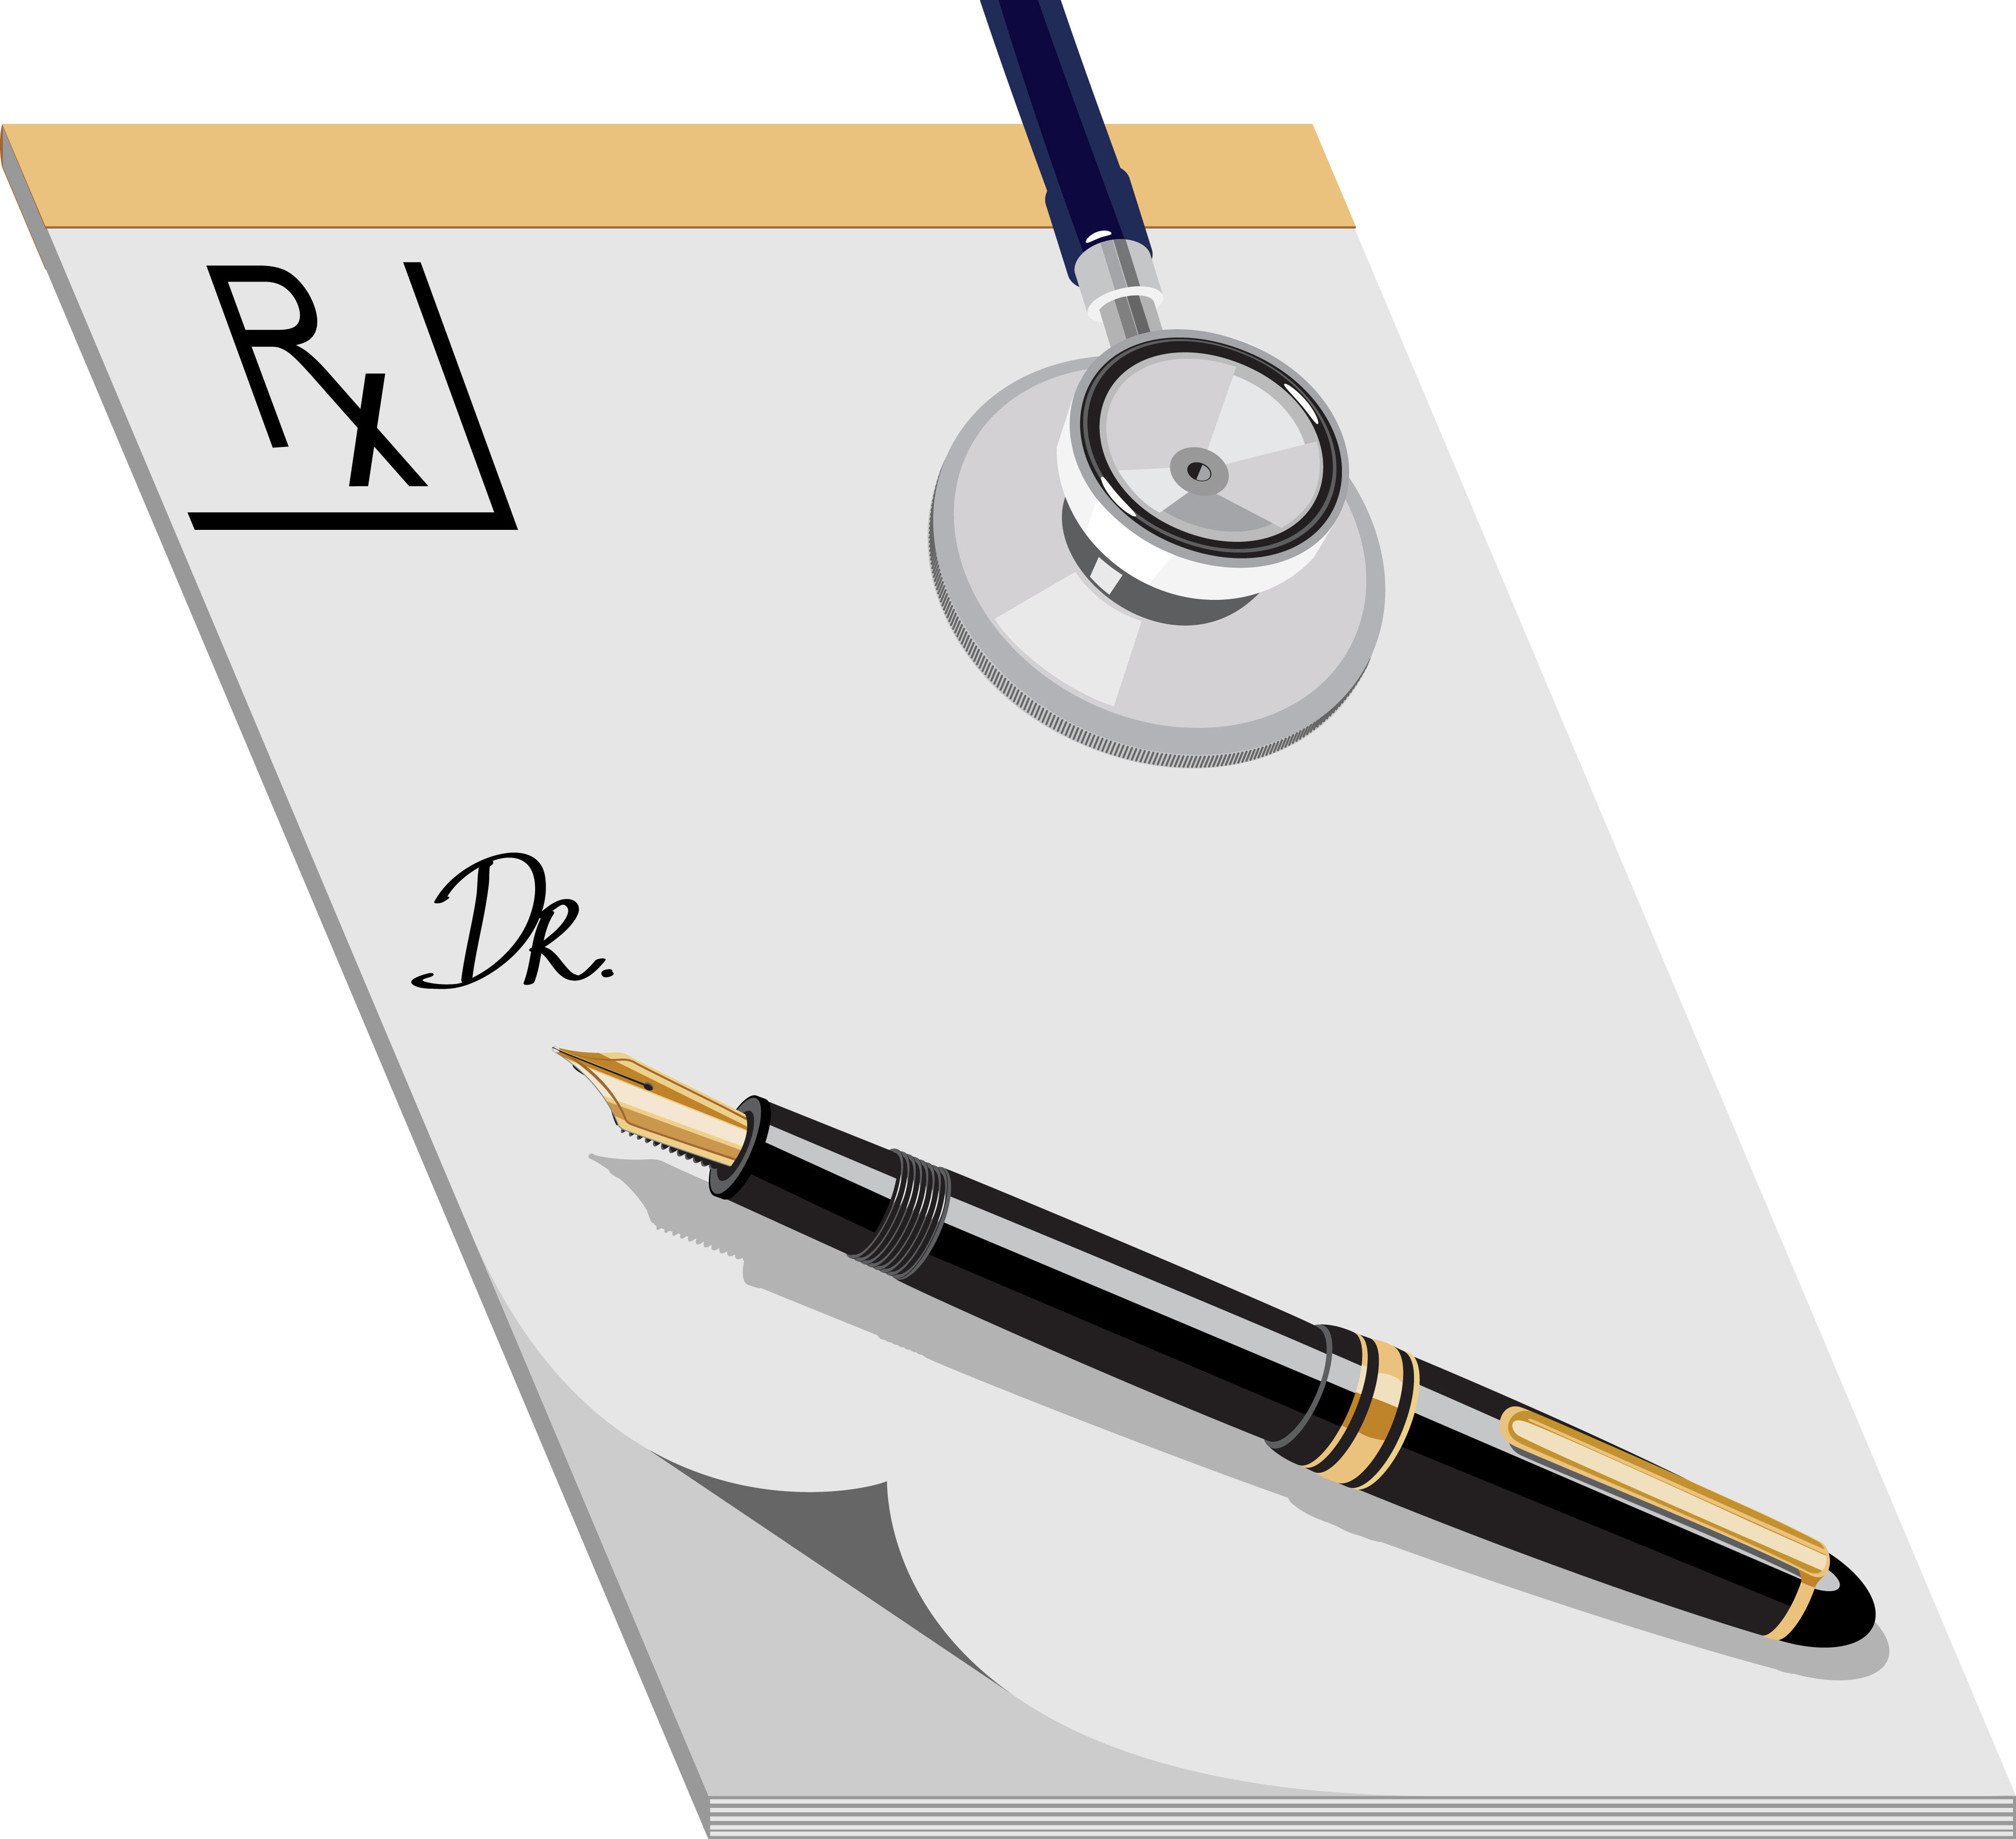 i will write 400word article about medicine related topic as a doctor